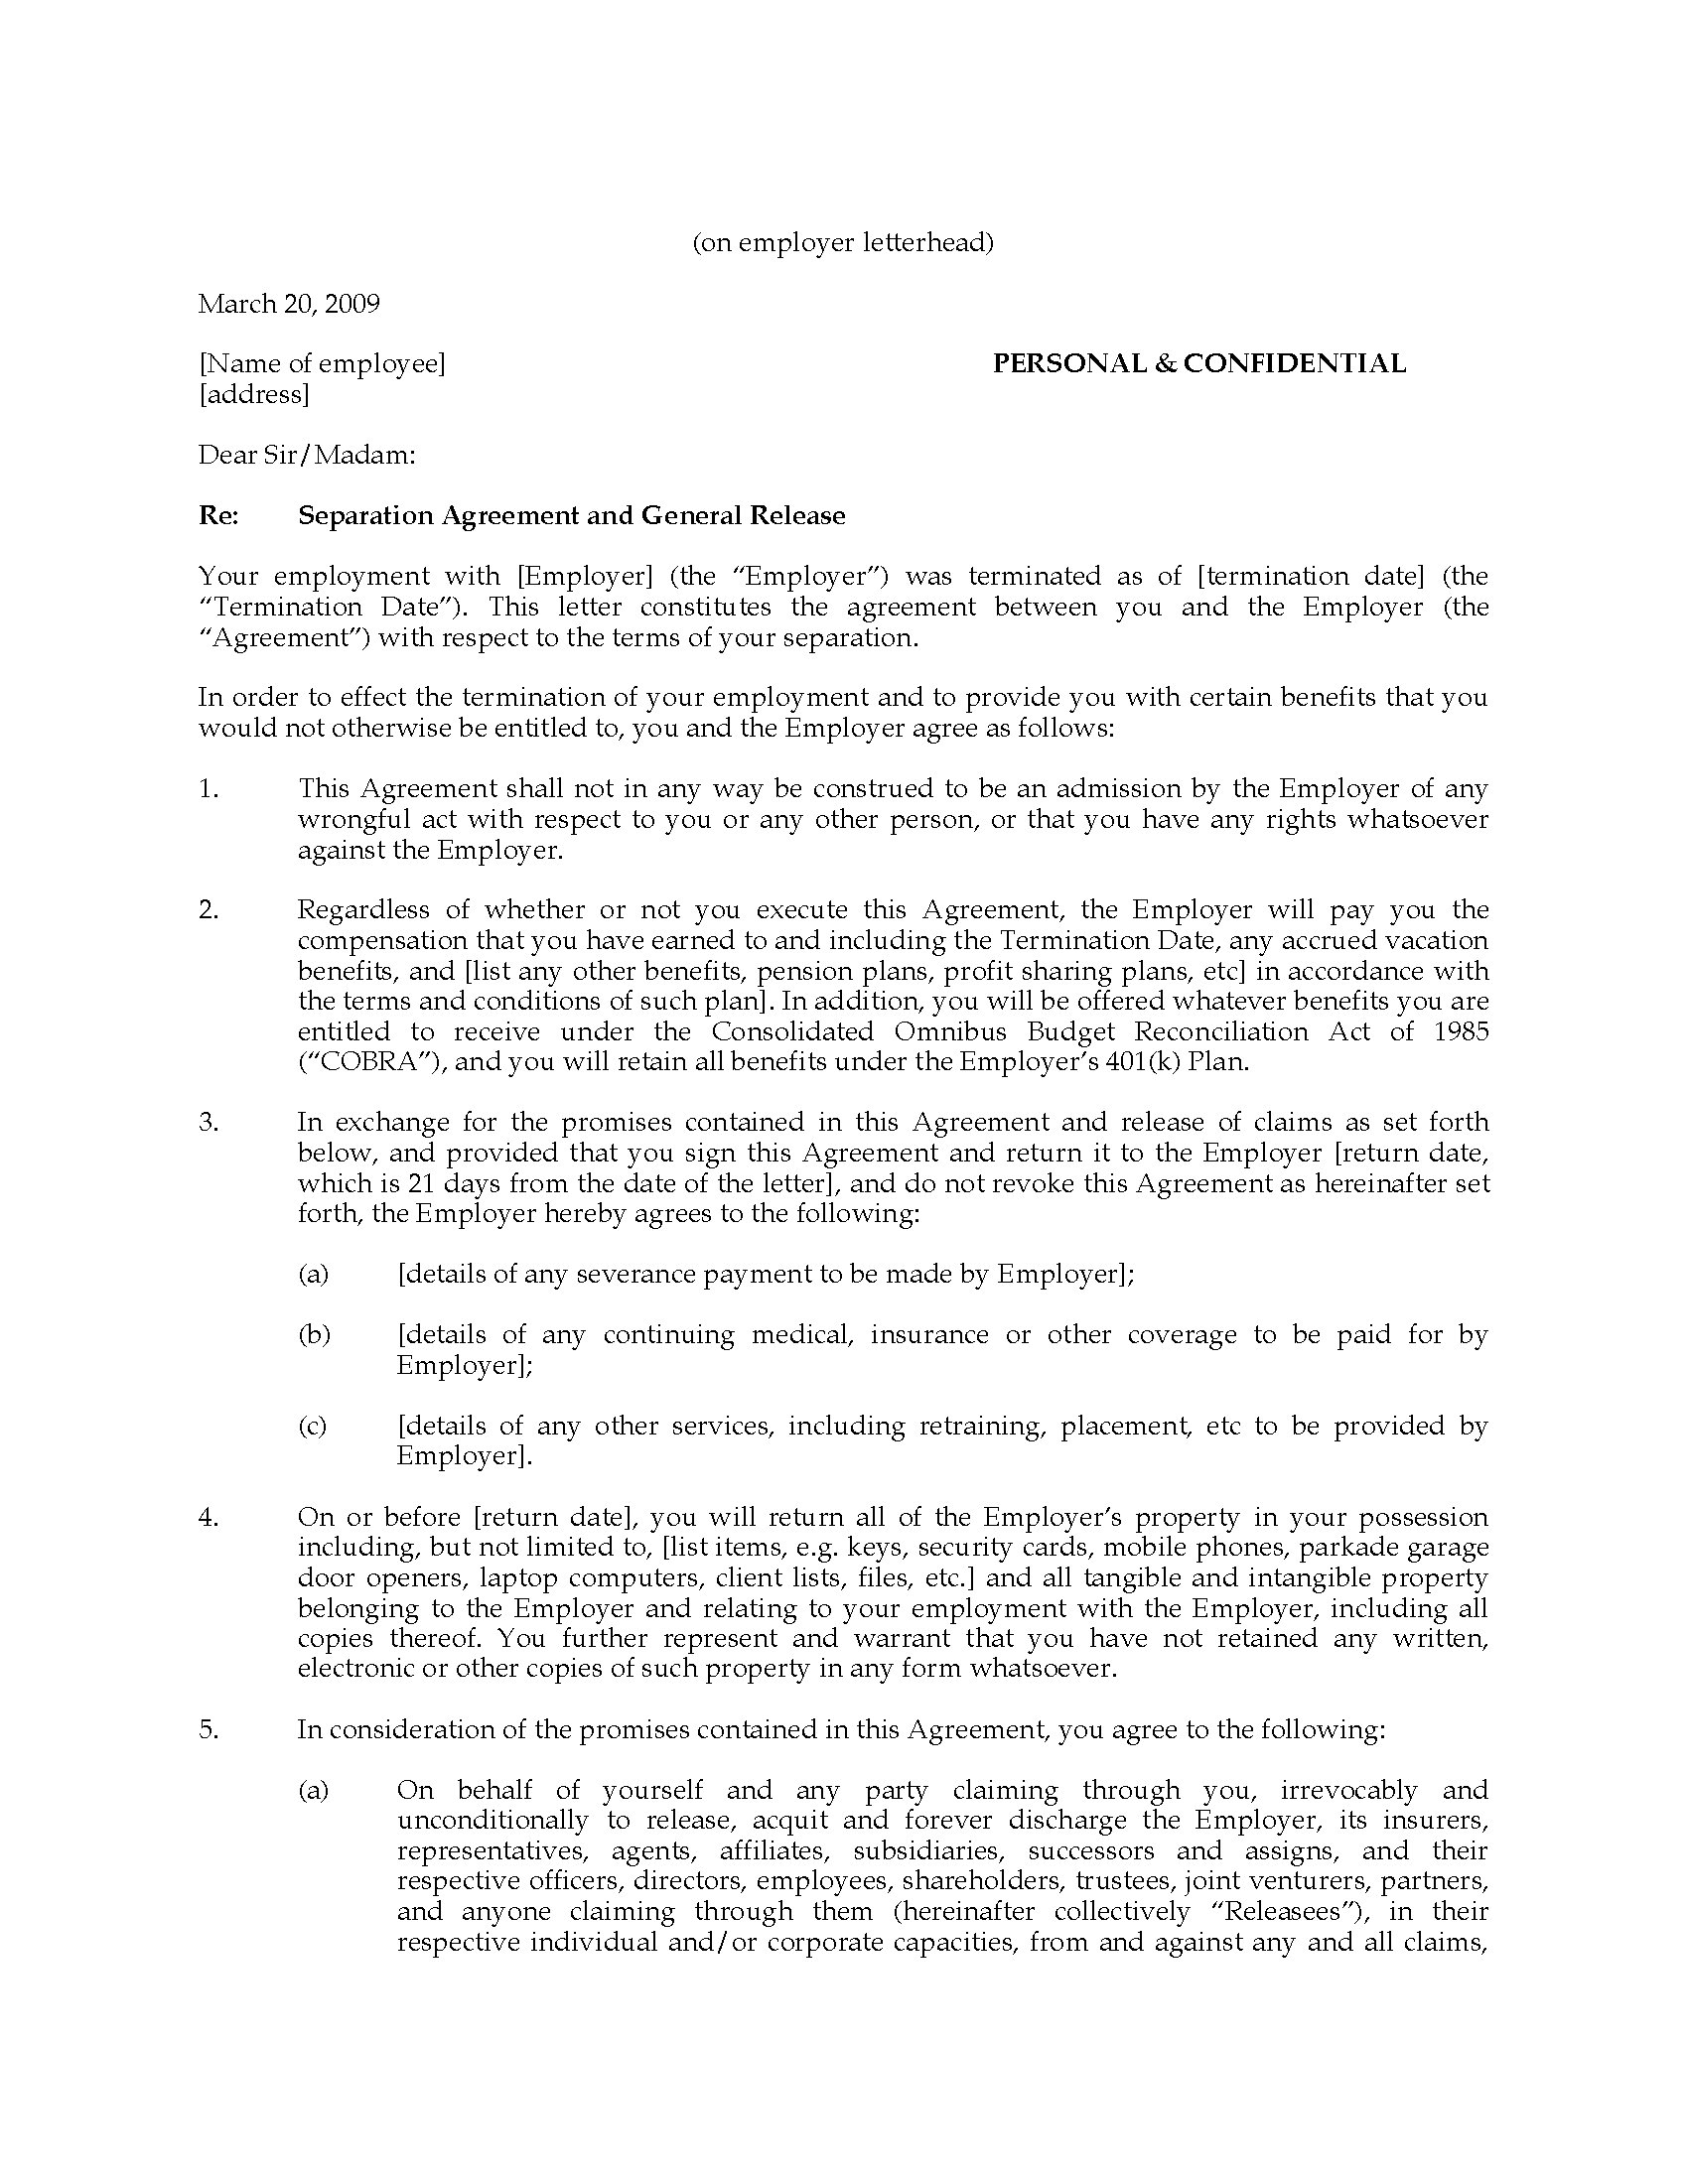 Picture Of California Employee Separation Agreement And General Release